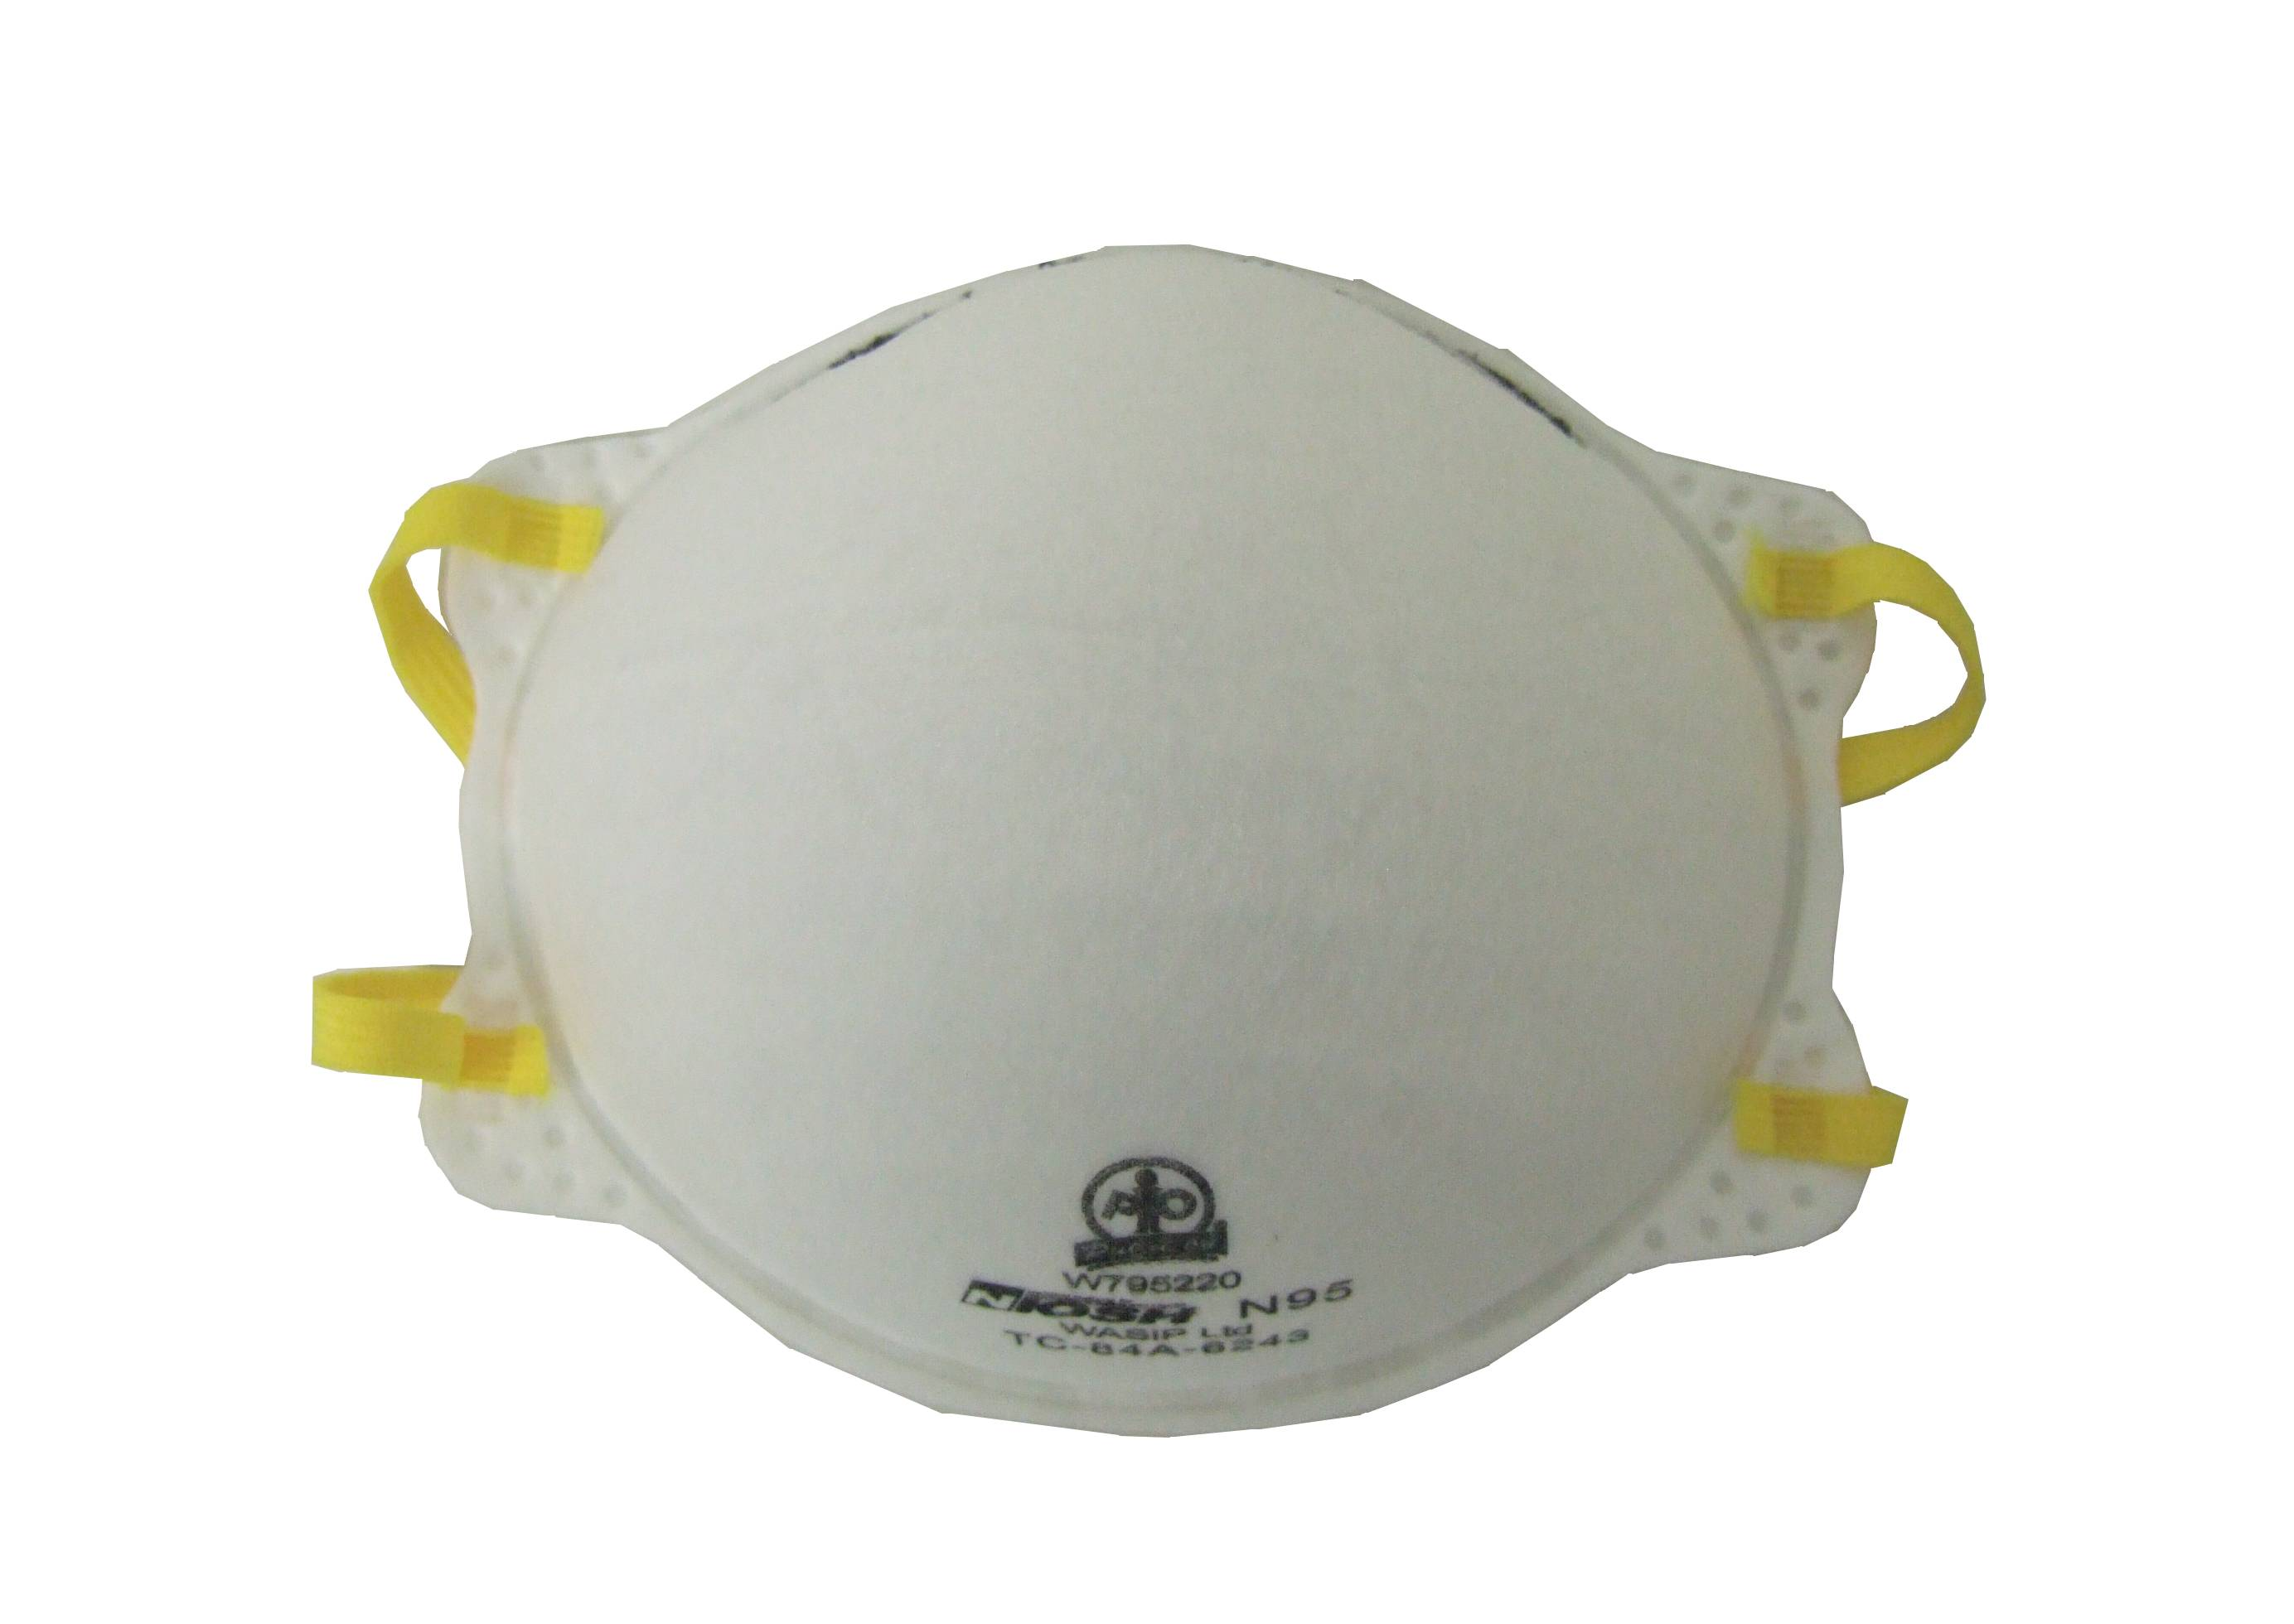 Solid For Per N95 Units Box Respirator box Cost-effective Particles 20 Non-oily amp; Protection Sold Liquid From Particulate